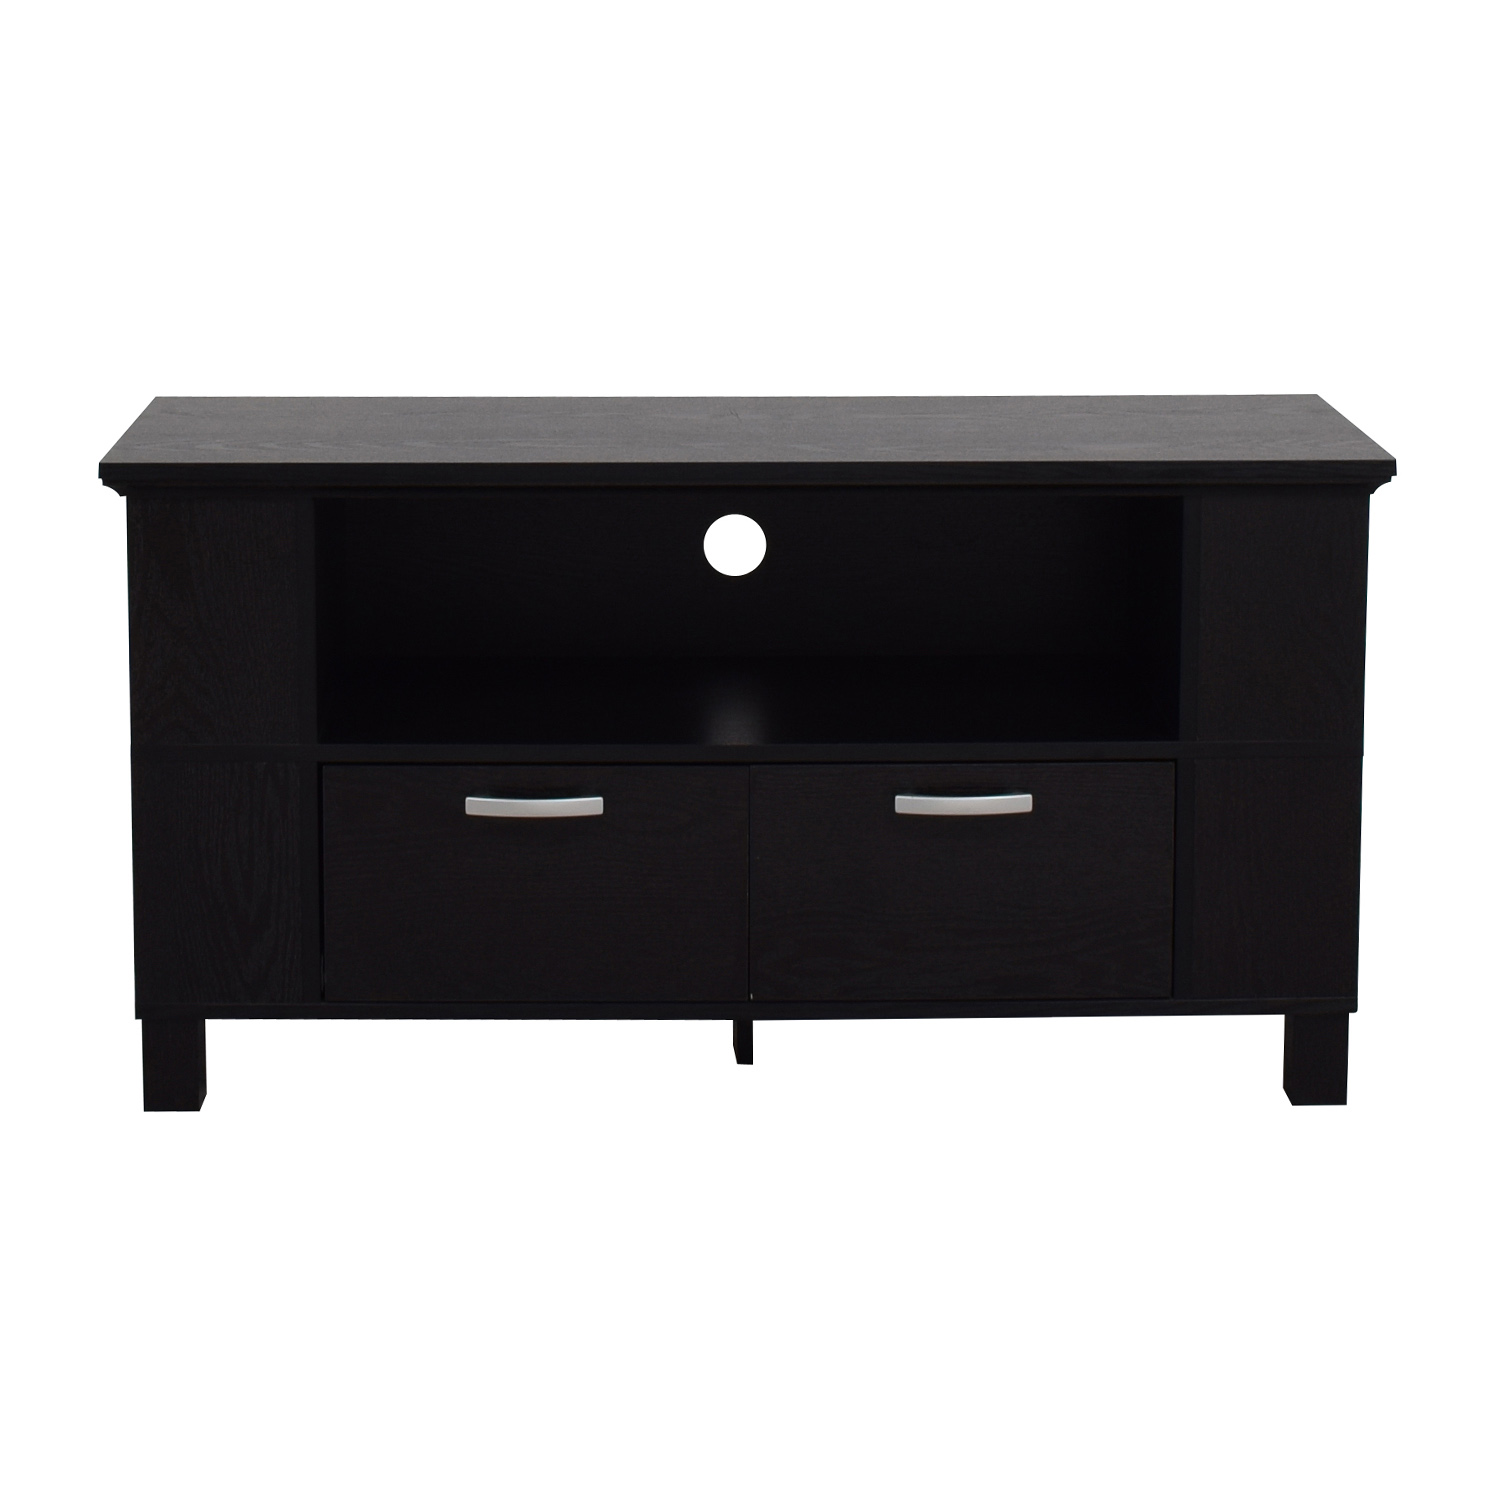 Espresso TV Stand with Two Drawers with Chrome Handles / Media Units